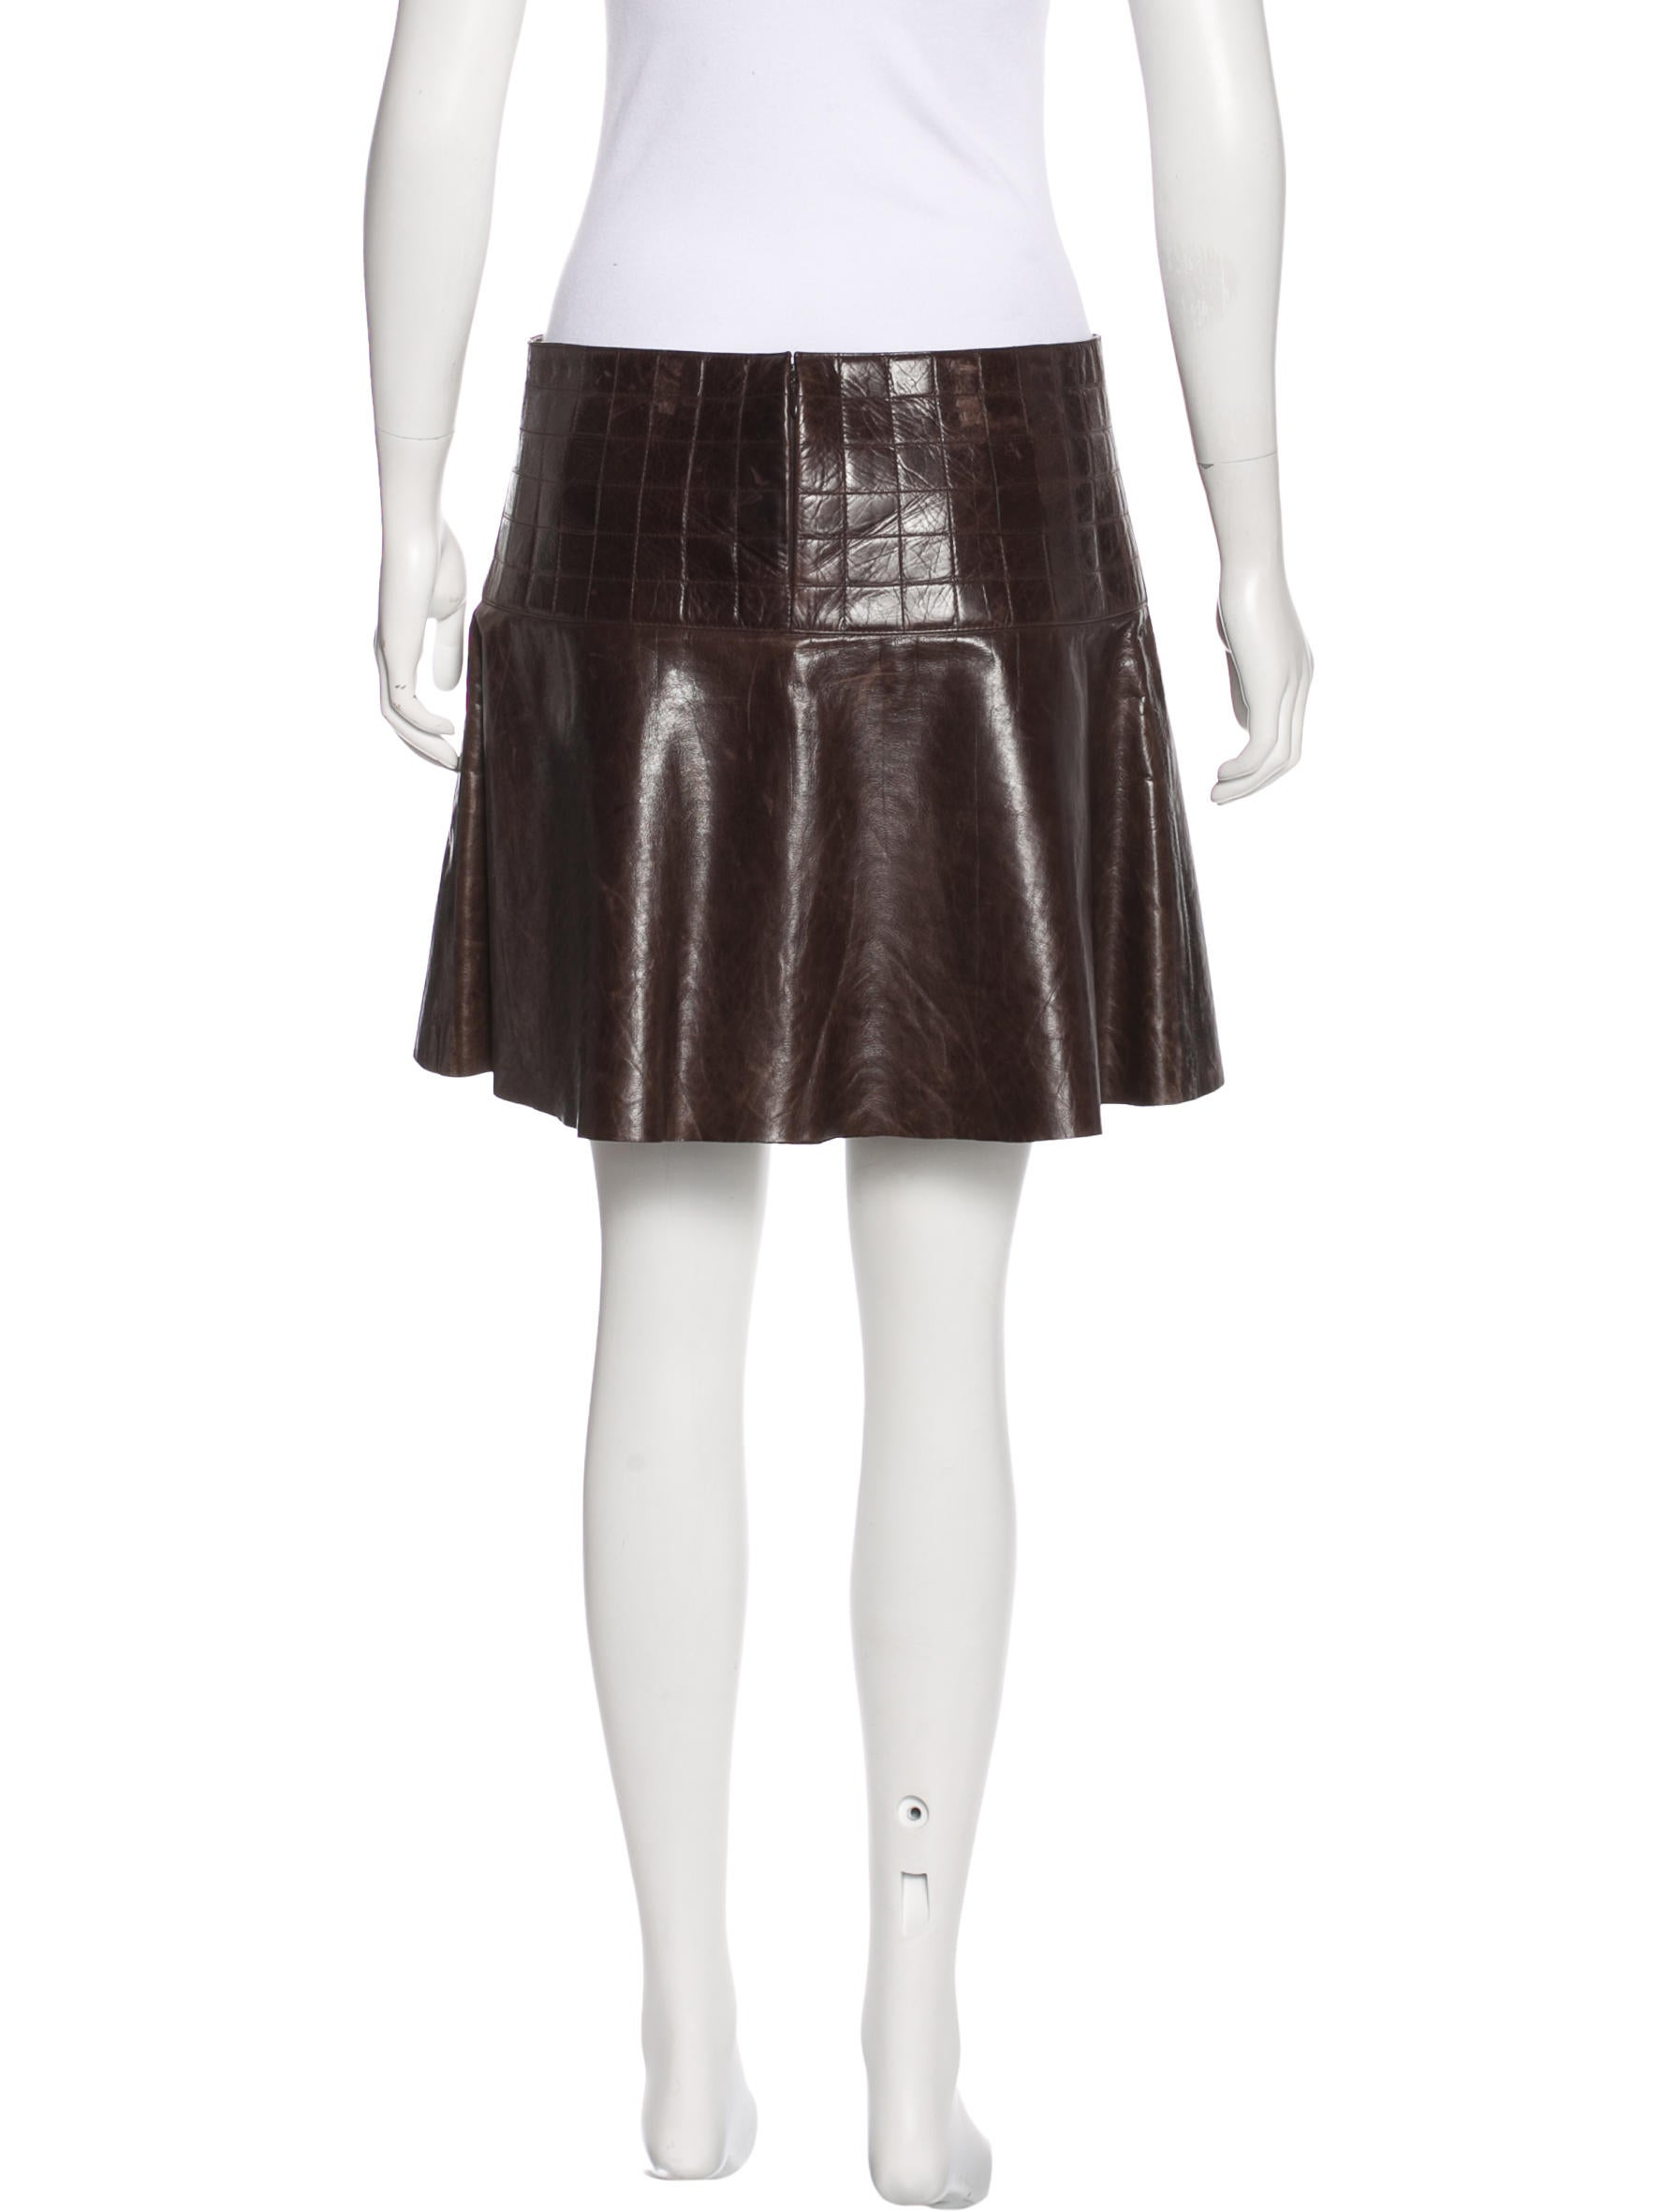 Discover women's leather skirts with ASOS. Shop for leather skirts & suede skirts and all skirt styles at ASOS.